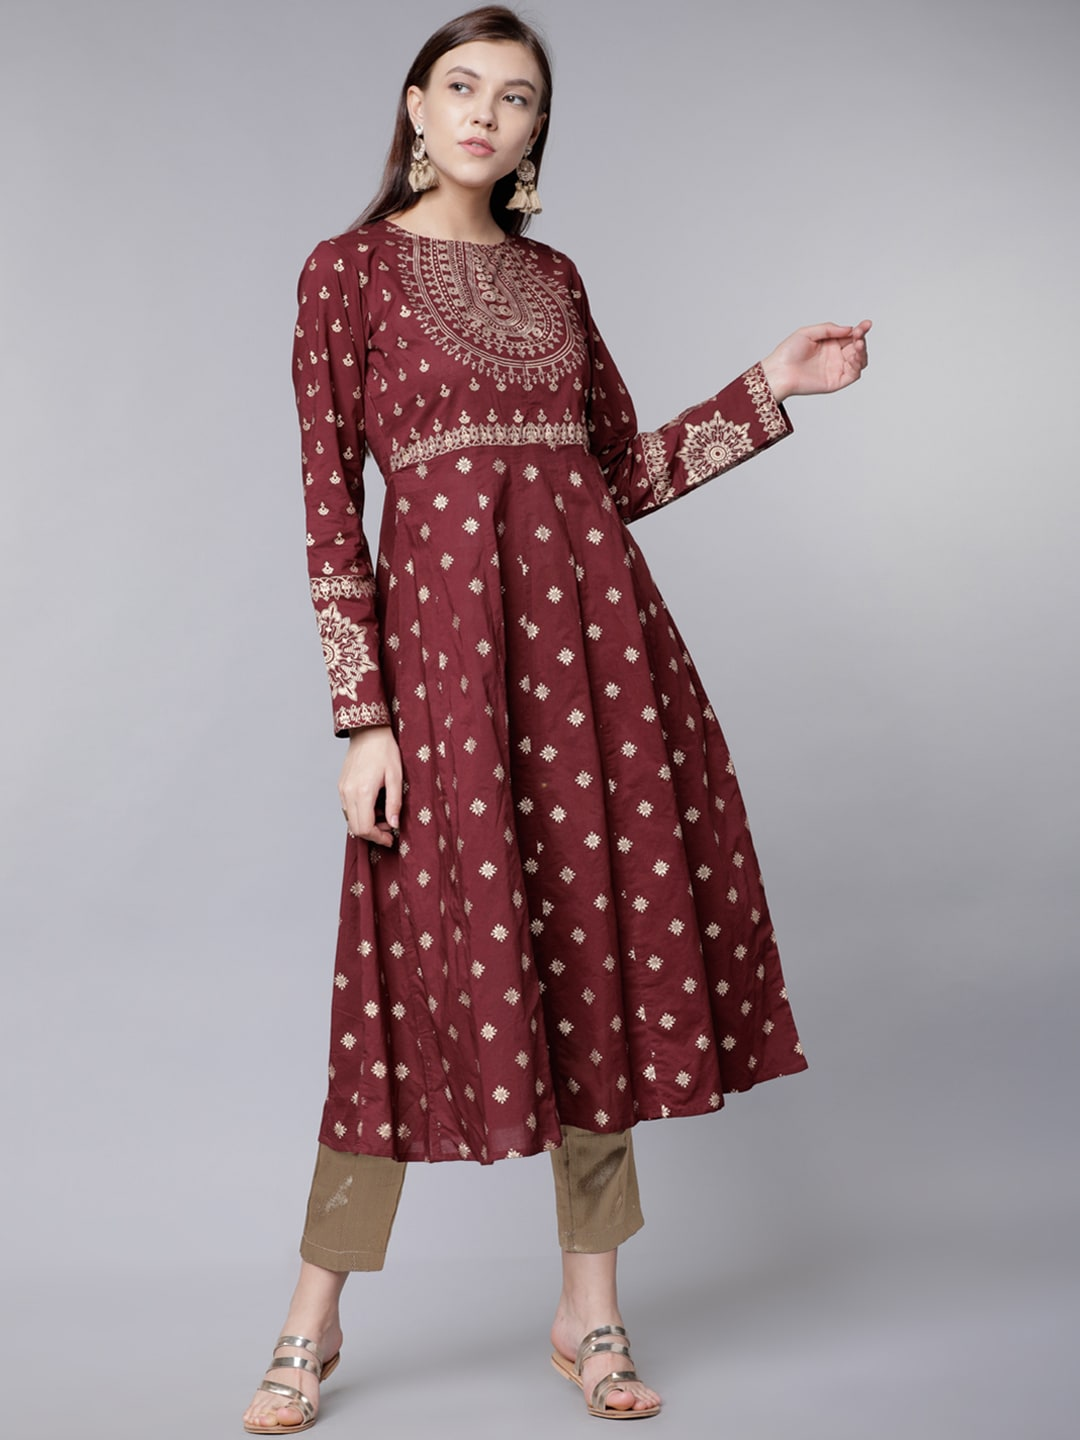 8970cebbe43 Women Vishudh Kurtas - Buy Women Vishudh Kurtas online in India